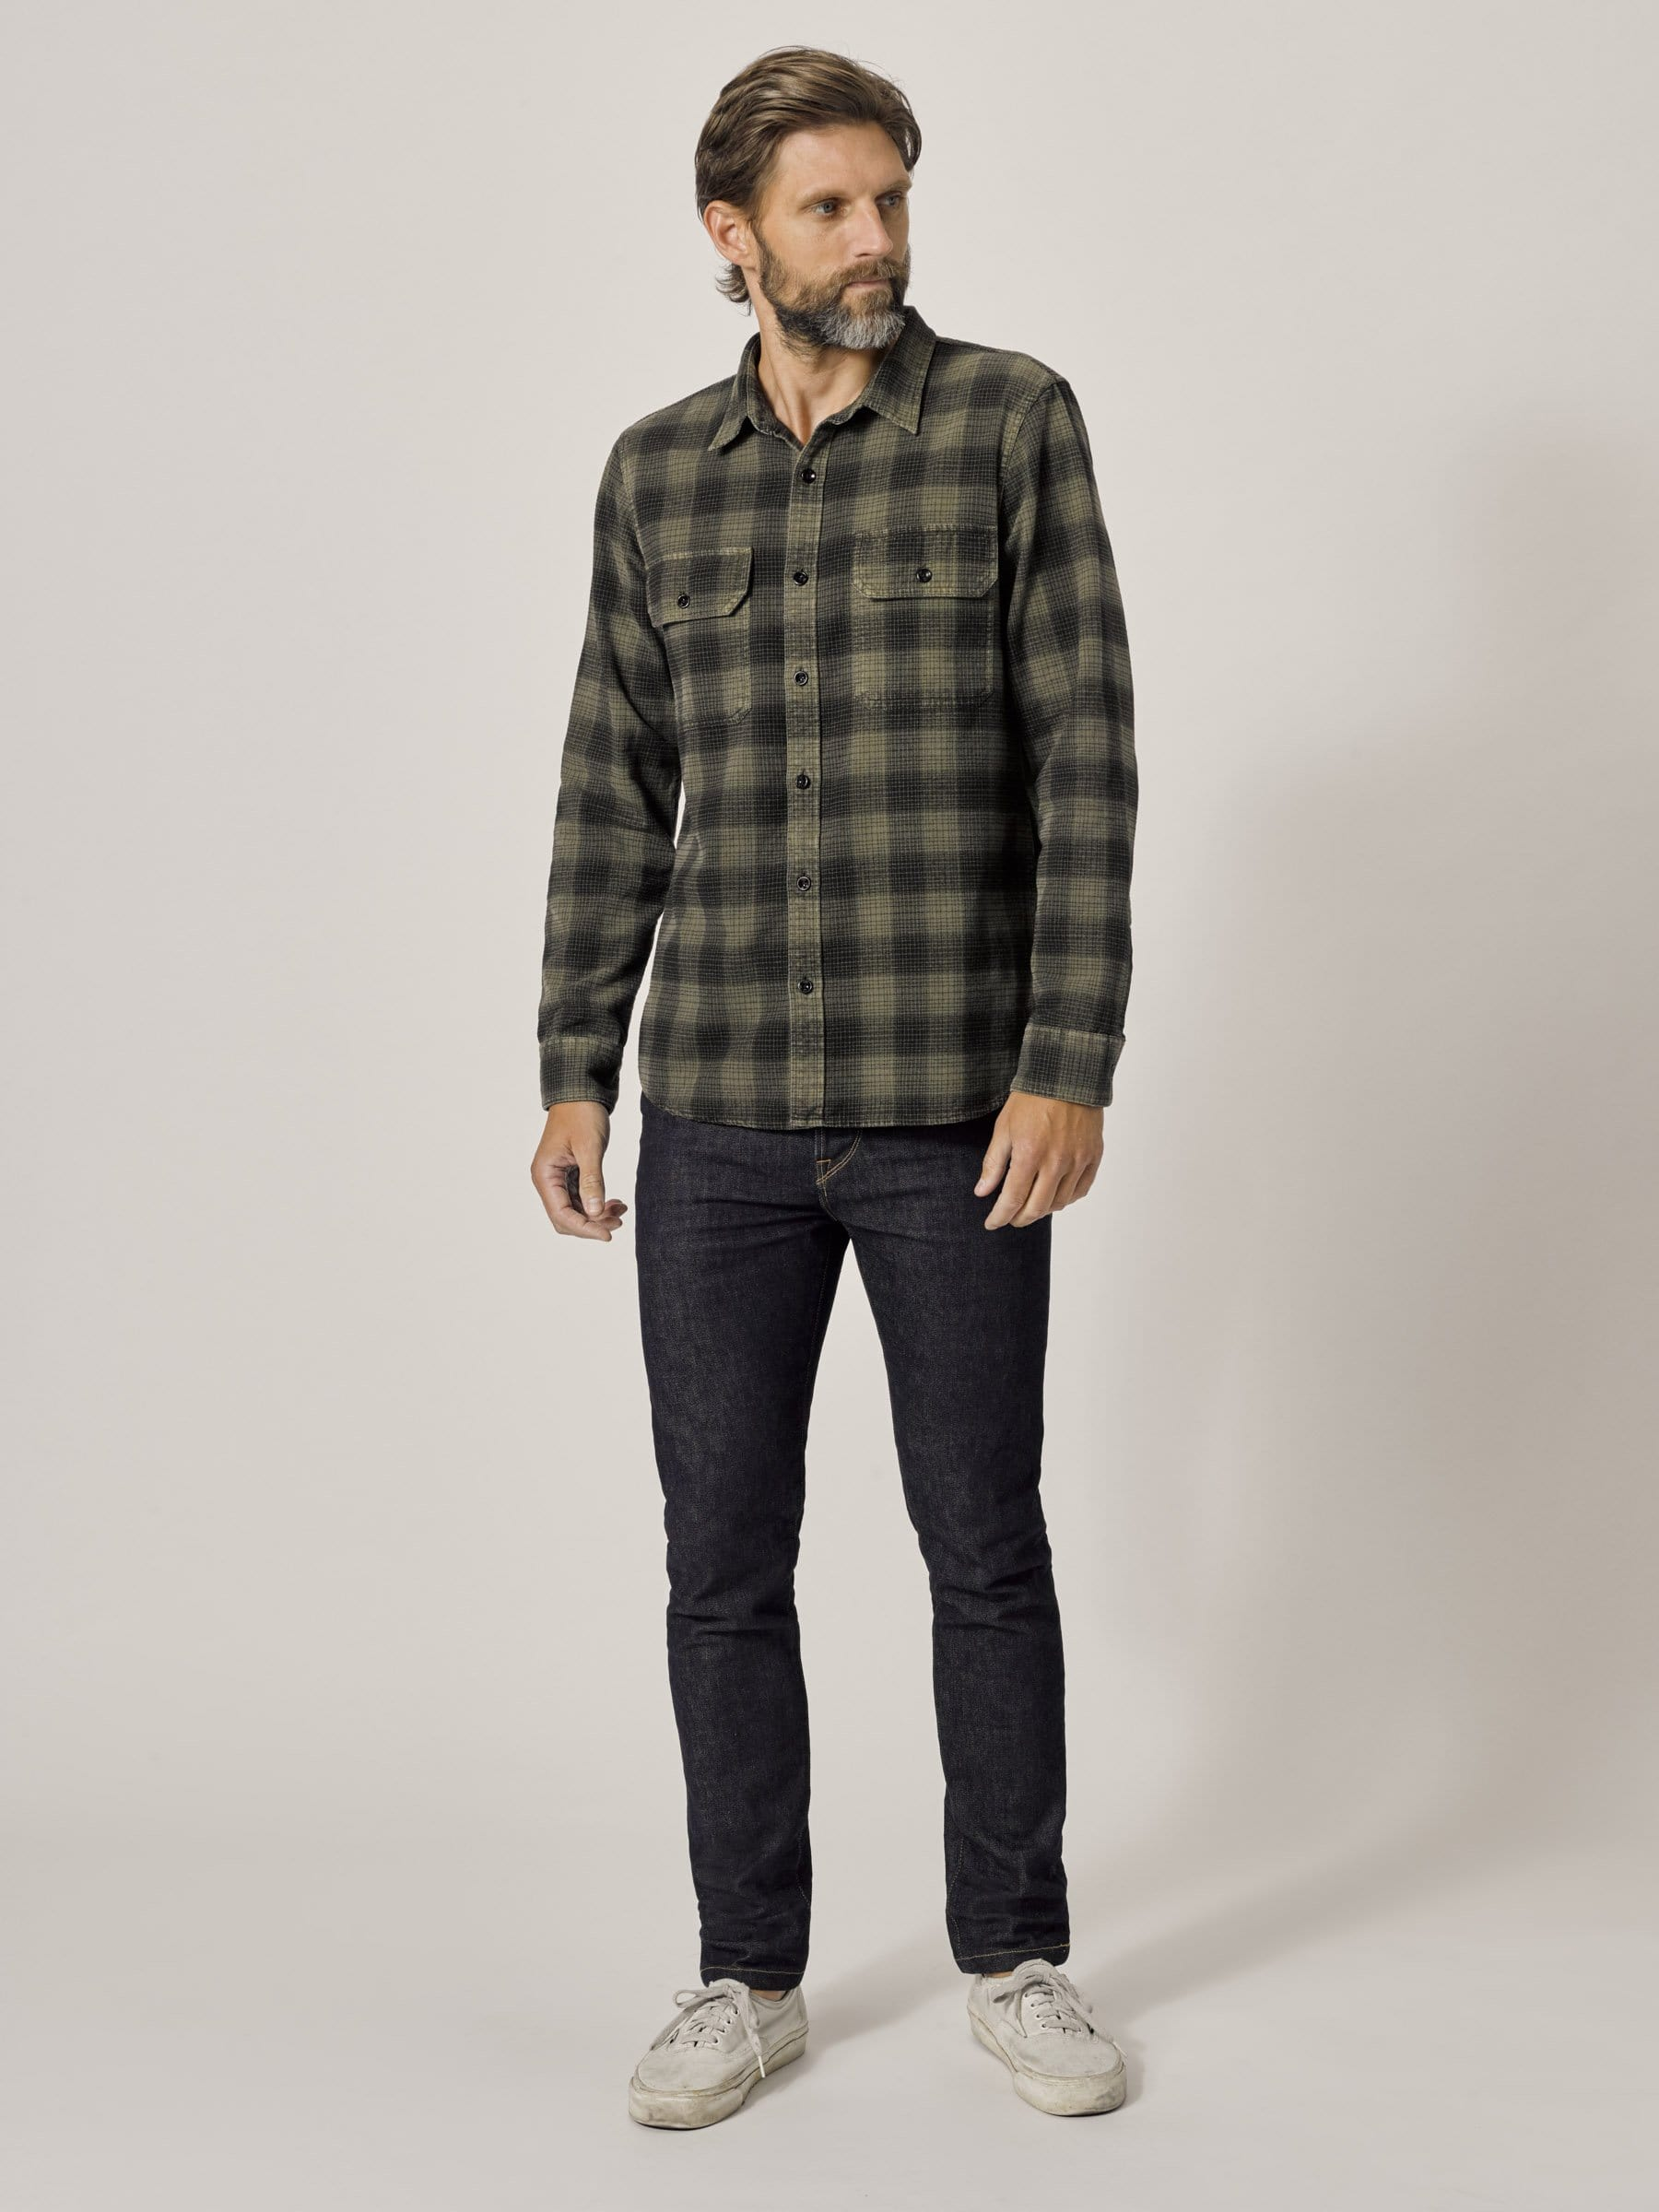 Buck Mason - Faded Hunter/Black Mill Flannel Two Pocket Shirt